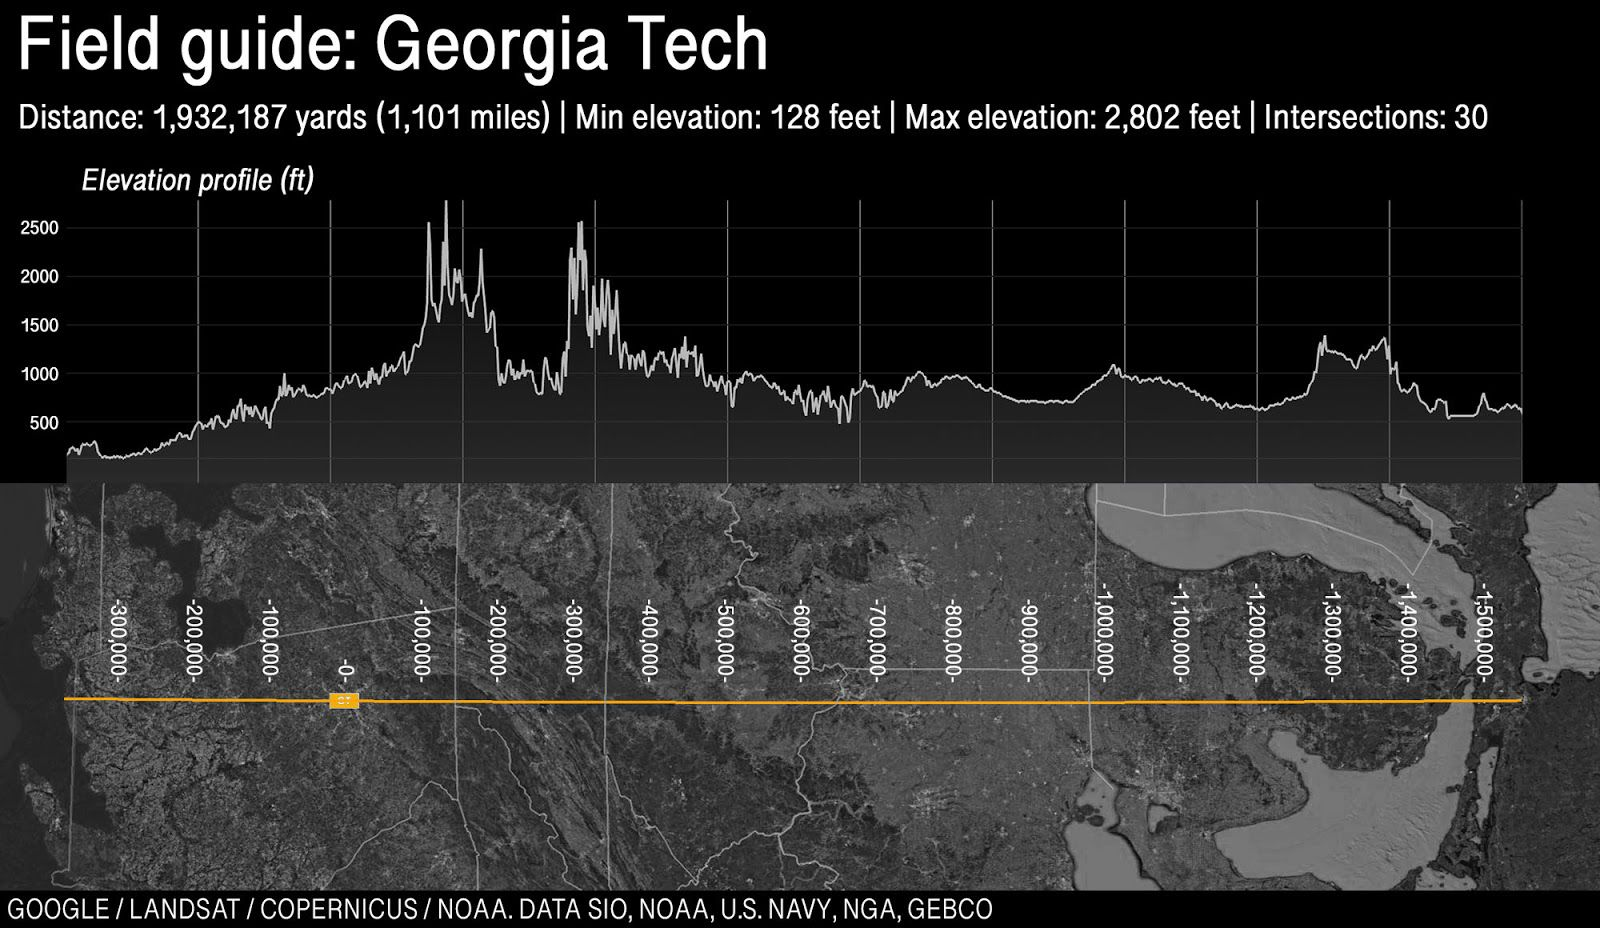 Map and elevation profile of Georgia Tech's field, stretching across the United States.